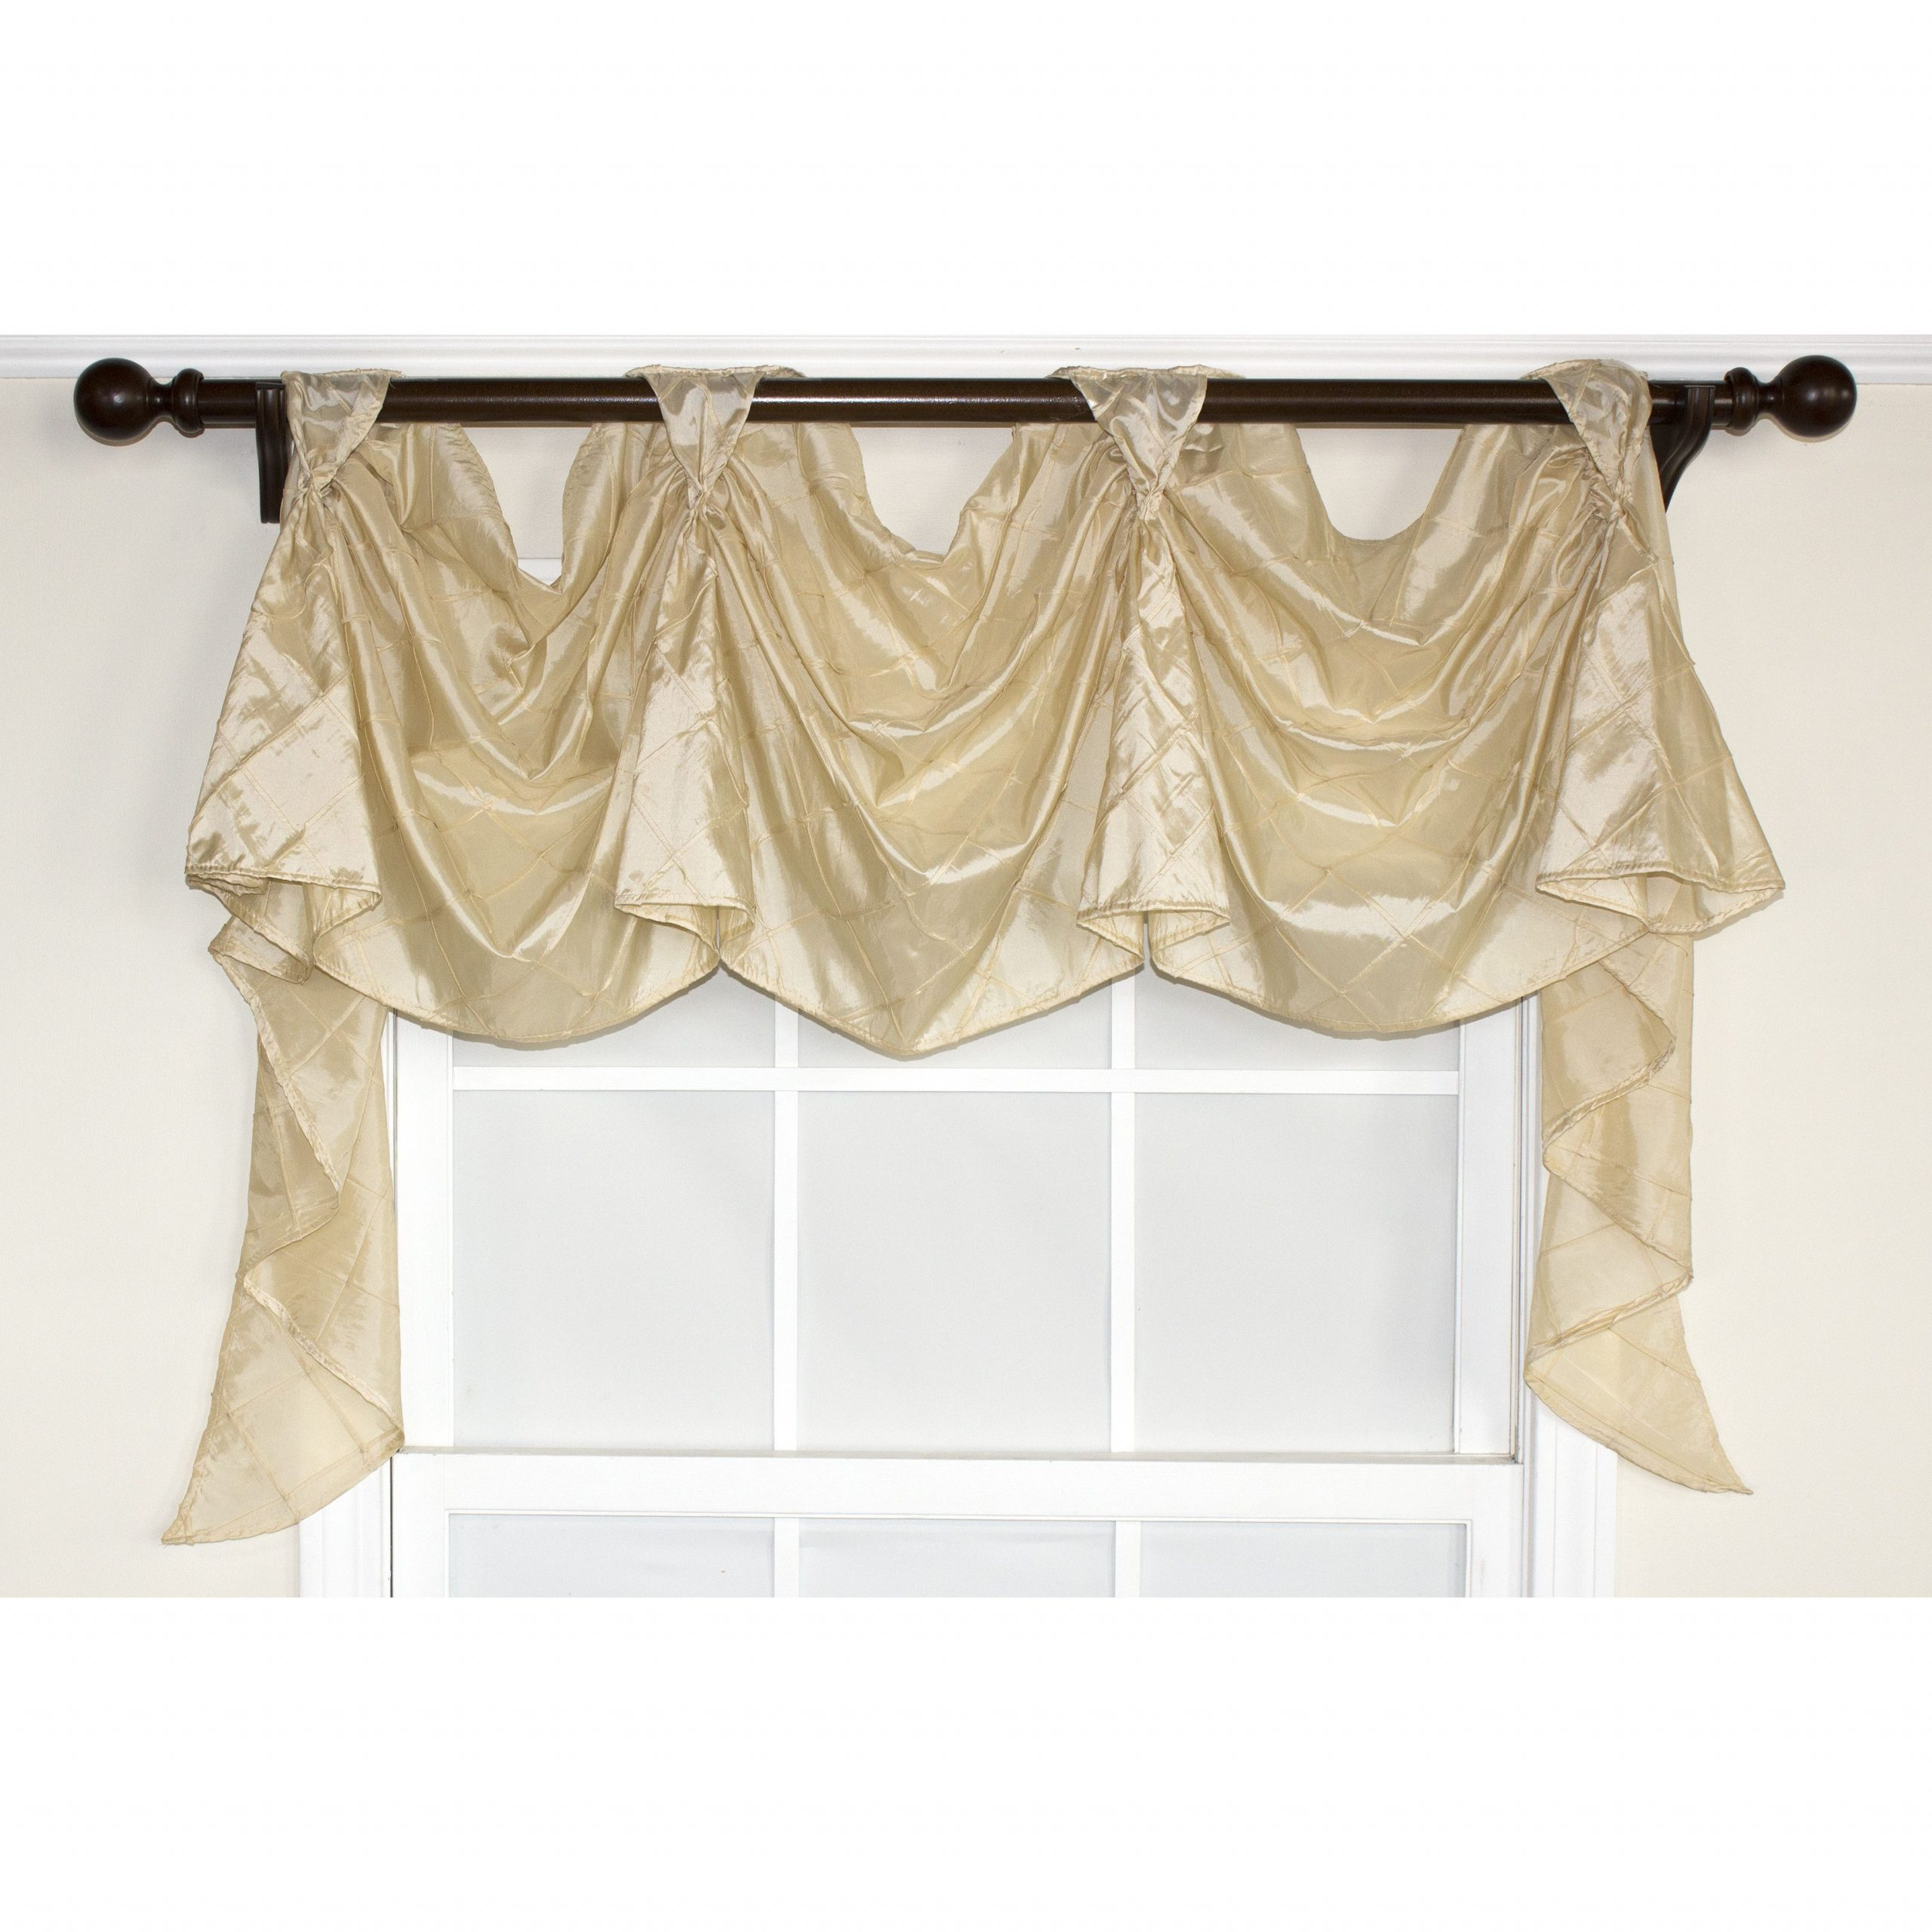 Set Bay For Valances Lace Valance Curtains Diy Pattern With Medallion Window Curtain Valances (View 4 of 20)